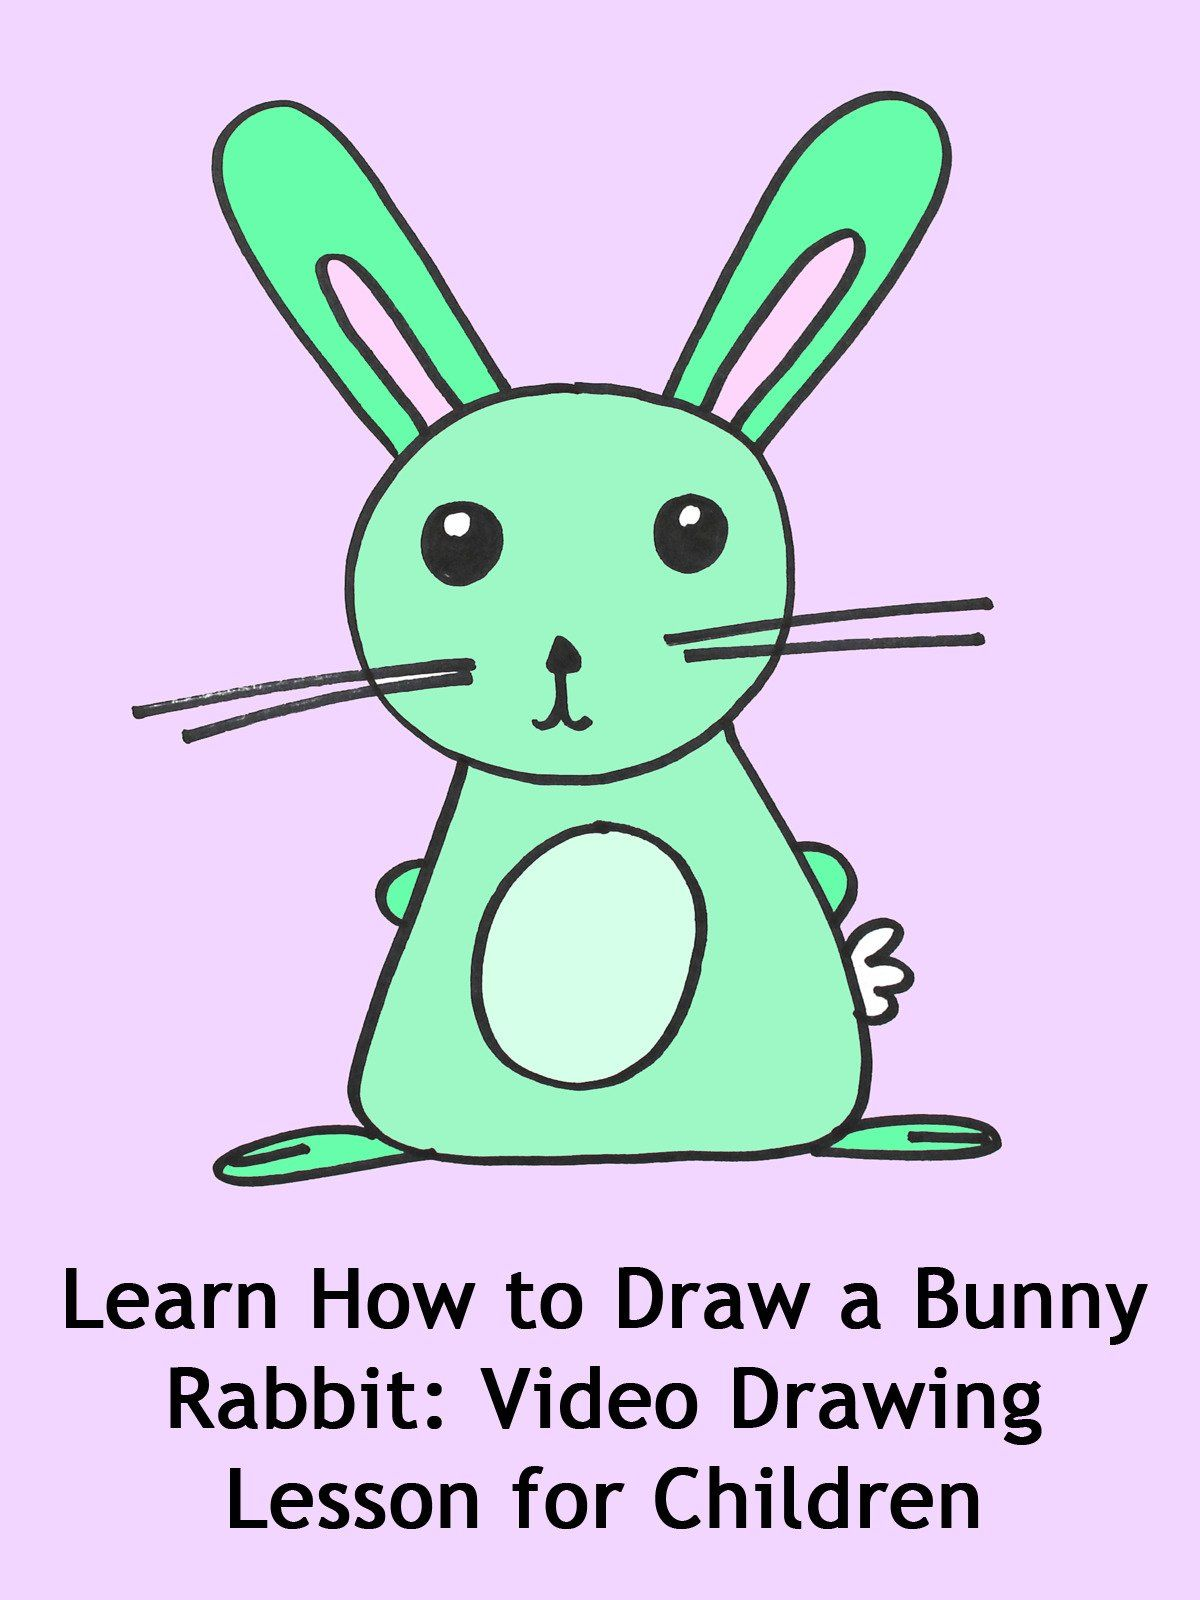 How To Draw A Rabbit Or Bunny Rabbit Drawing Coloring For Kids In 2020 Rabbit Drawing Bunny Drawing Drawing Lessons